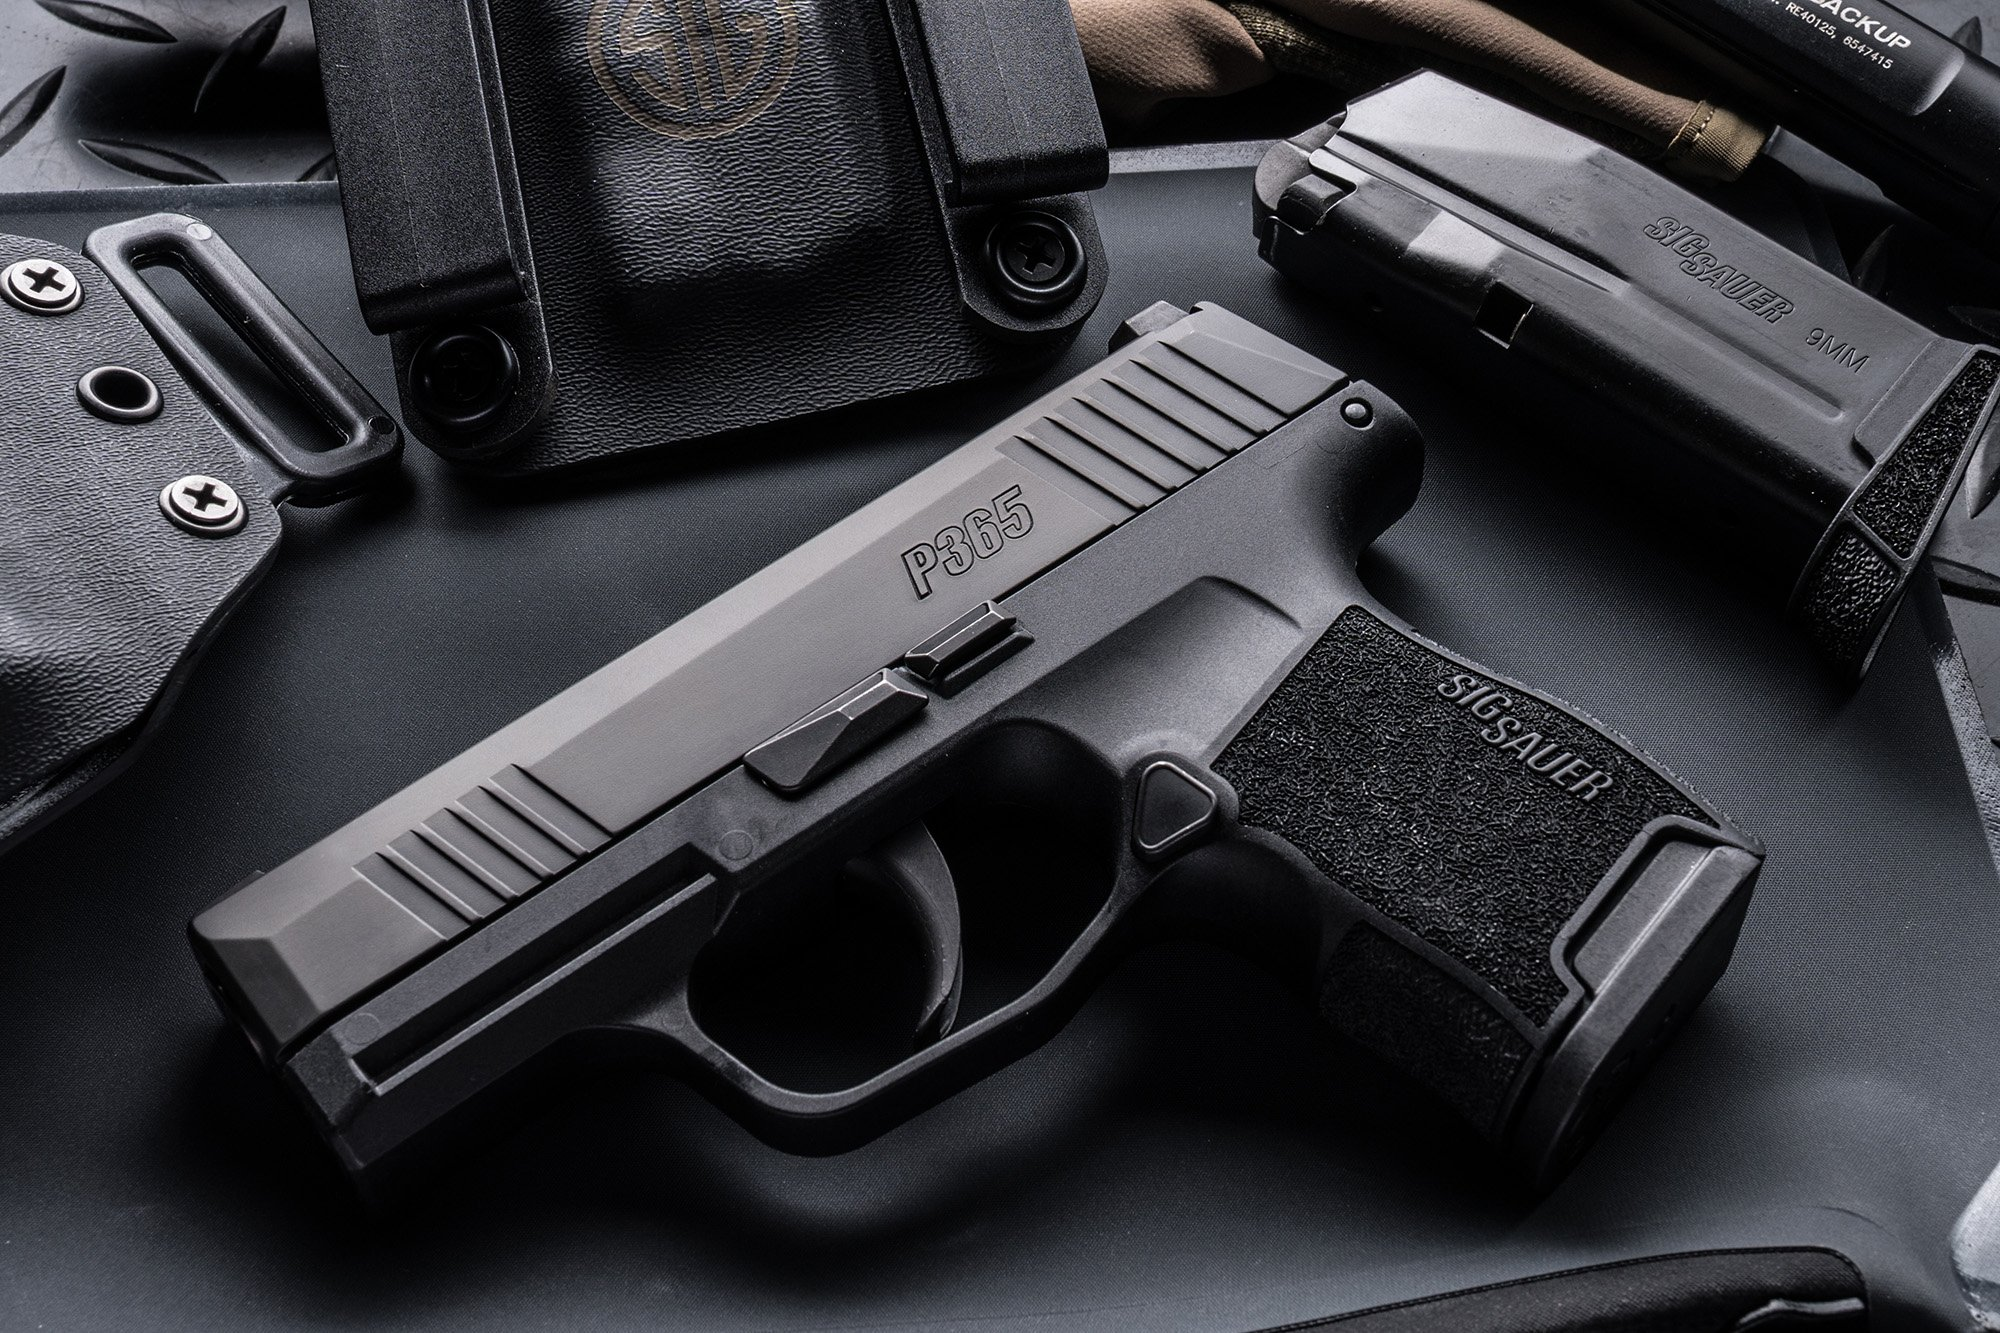 SIG Sauer Introduces the P365 Concealed Carry Pistol